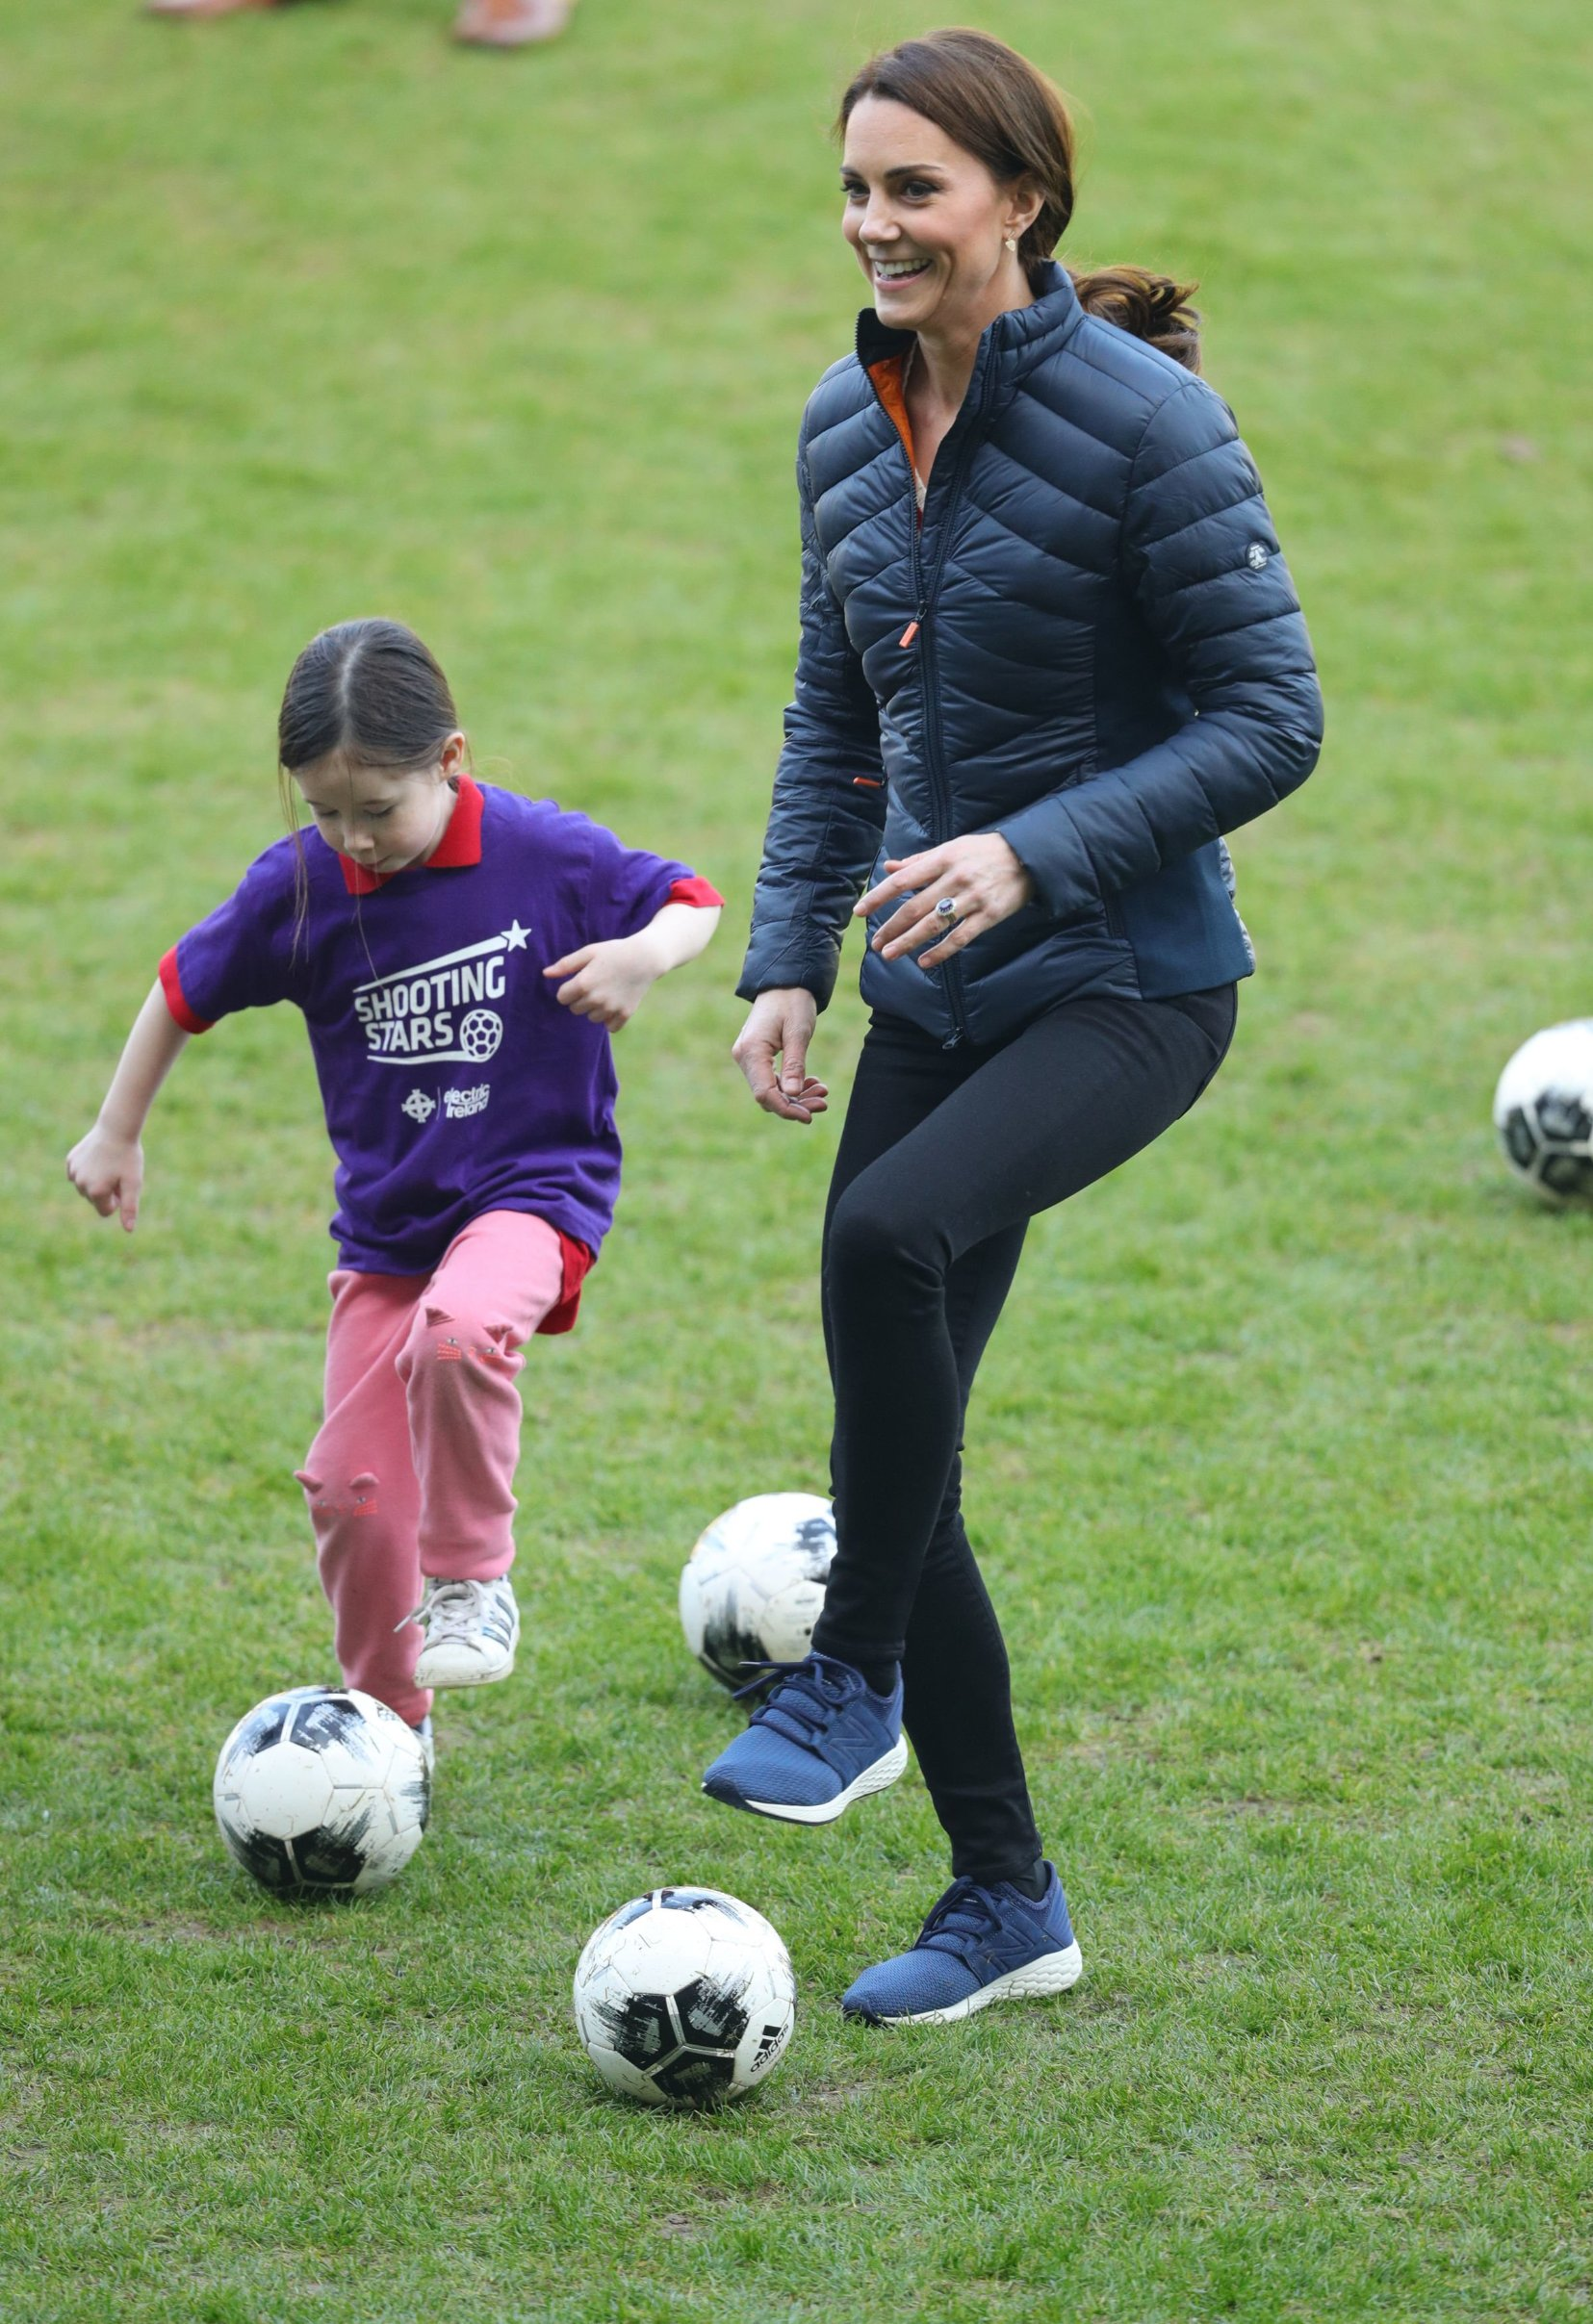 The Duchess of Cambridge tries her hand at football during her visit to Windsor Park, Belfast as part of her and the Duke of Cambridge's two day tour of Northern Ireland., Image: 416274731, License: Rights-managed, Restrictions: , Model Release: no, Credit line: Profimedia, Press Association